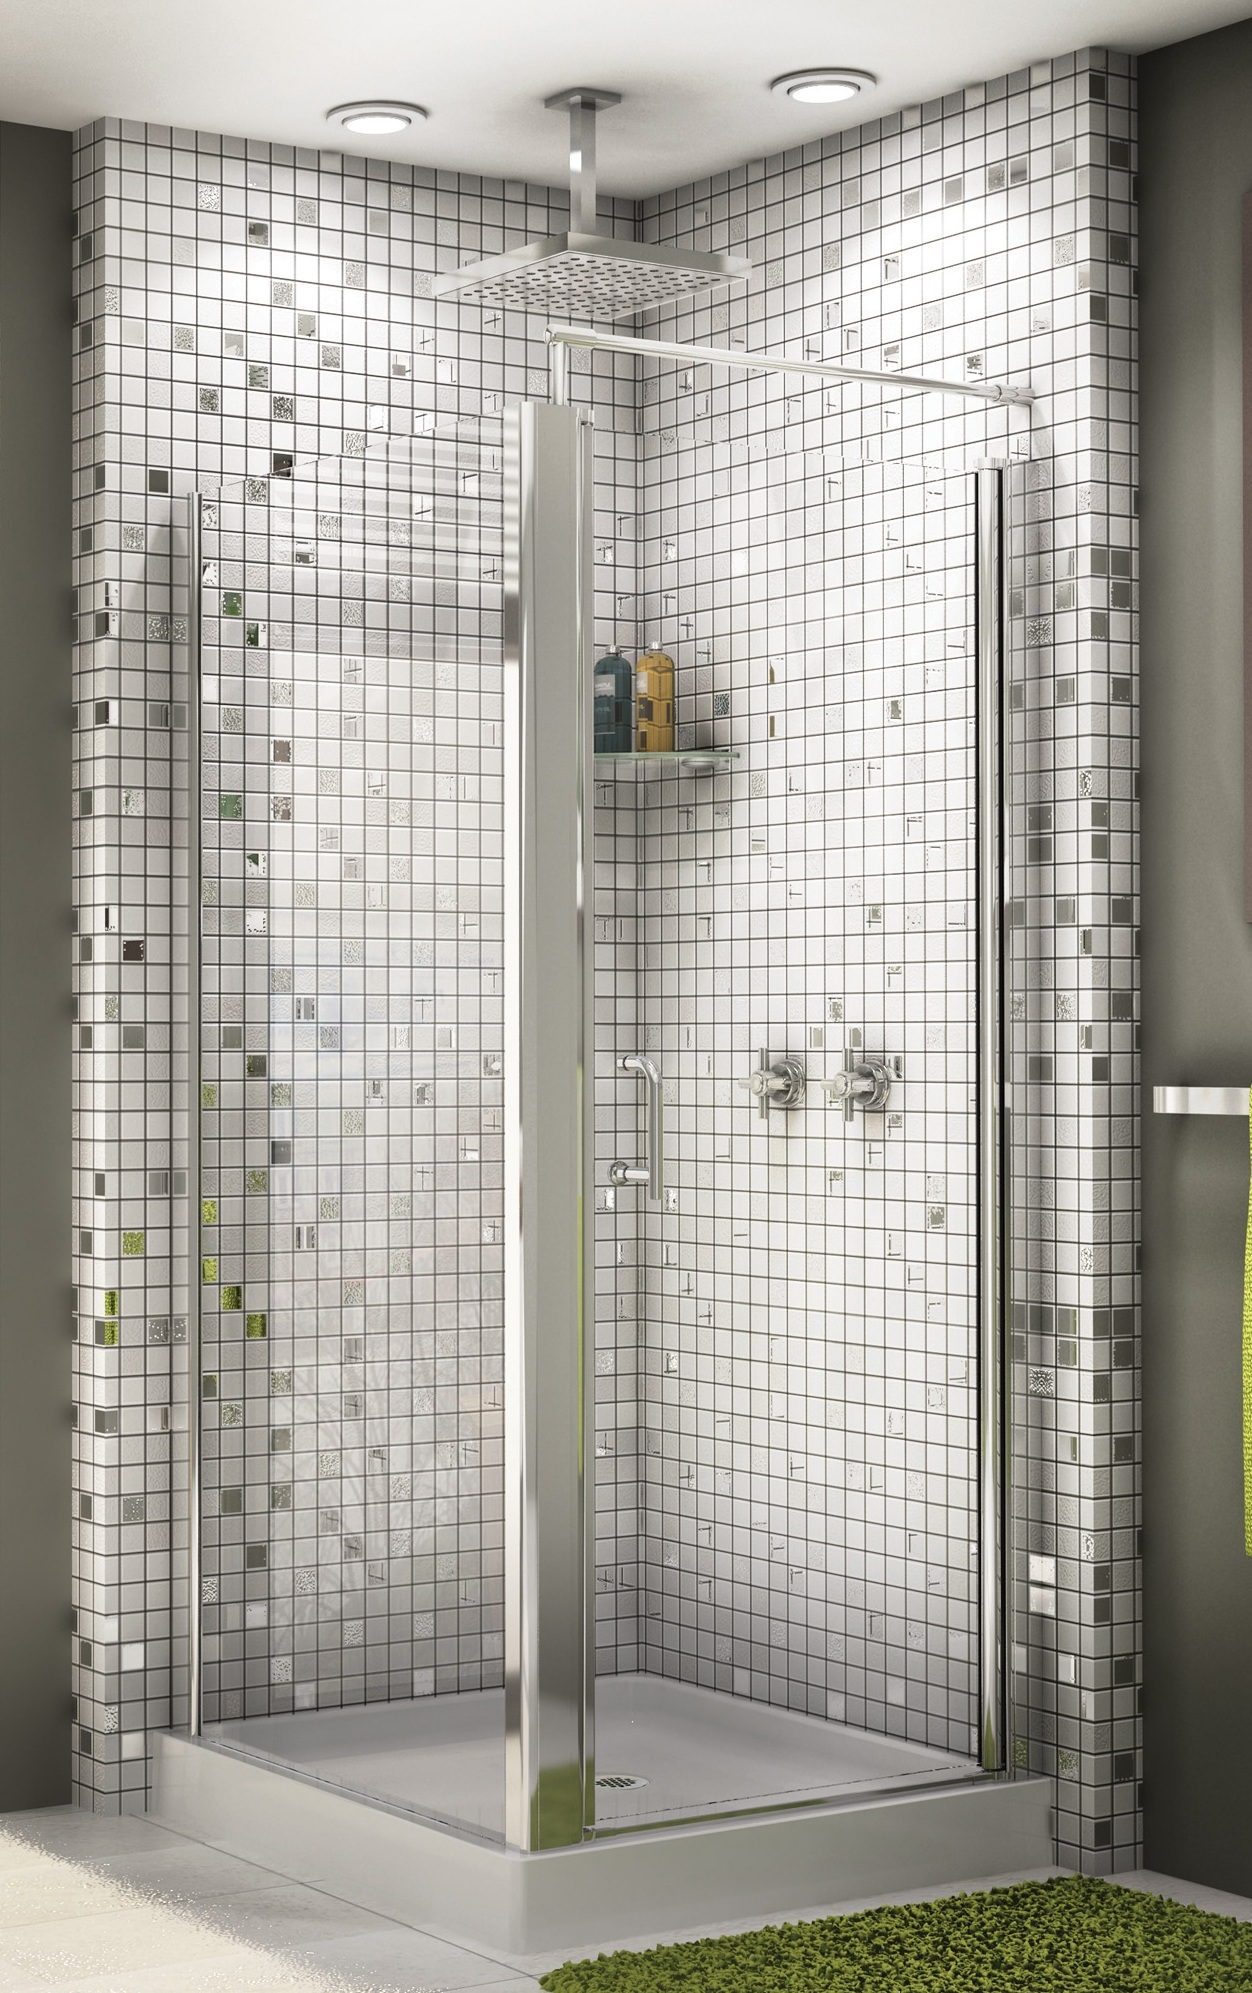 Sliding glass shower door hardware designs   osbdata.com